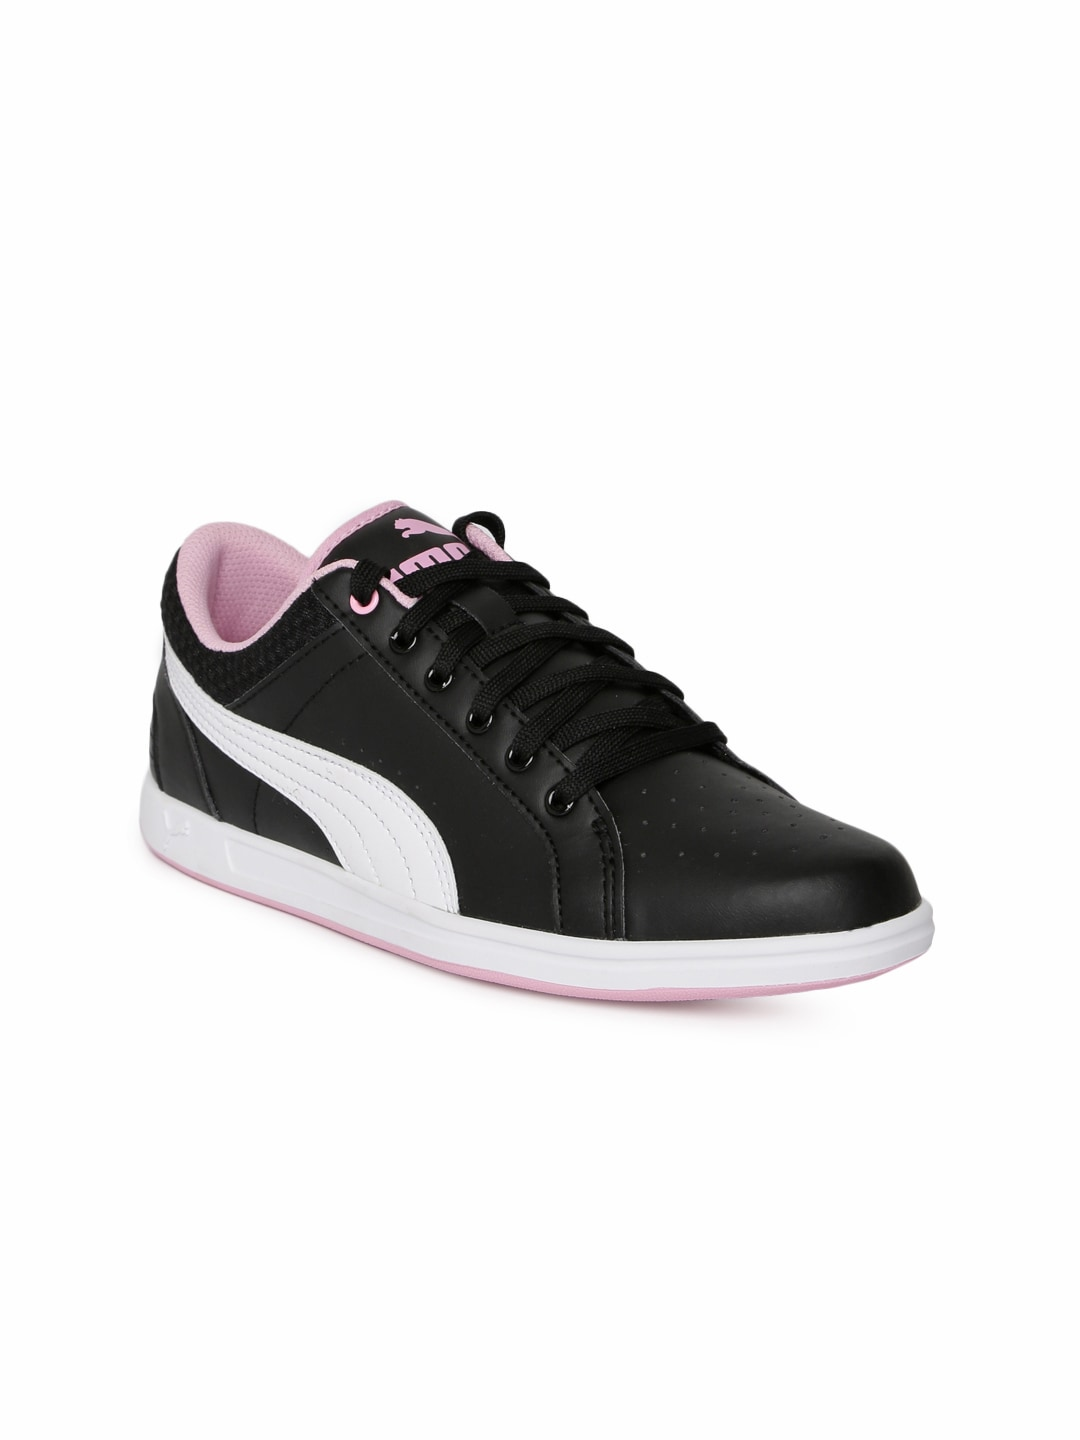 ddaf5610b322b6 Puma Casual Shoes - Casual Puma Shoes Online for Men Women